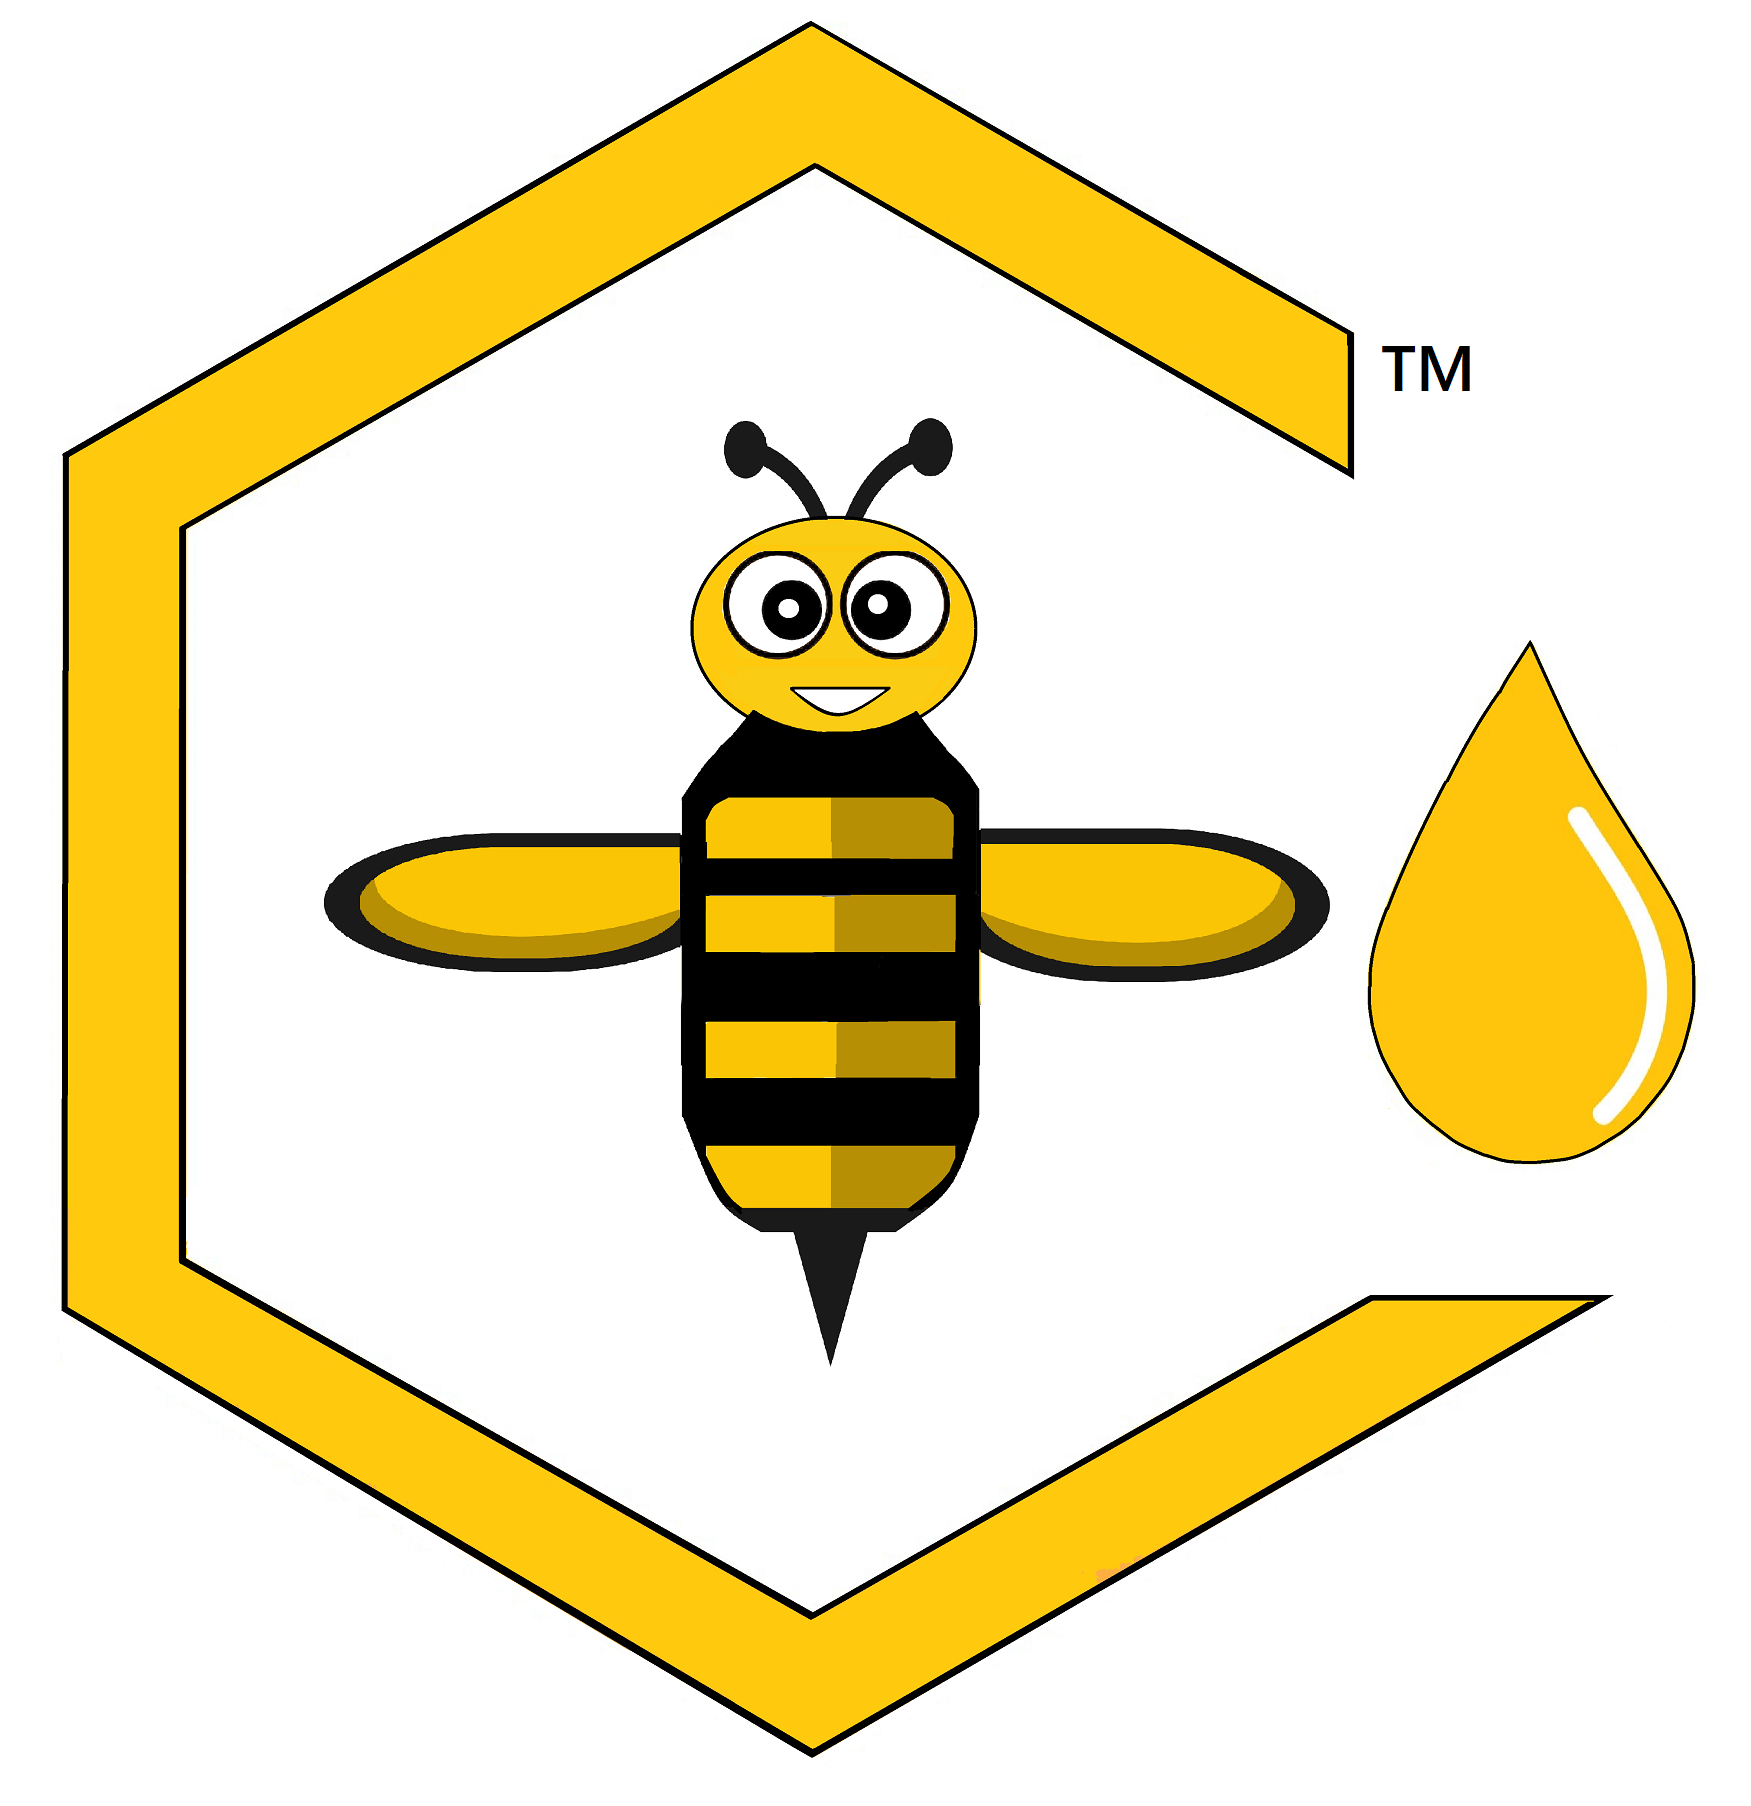 Inventor Stings Patent Office, Mockingly Bringing Honeybee Tech To Public With Perfume Scent Course